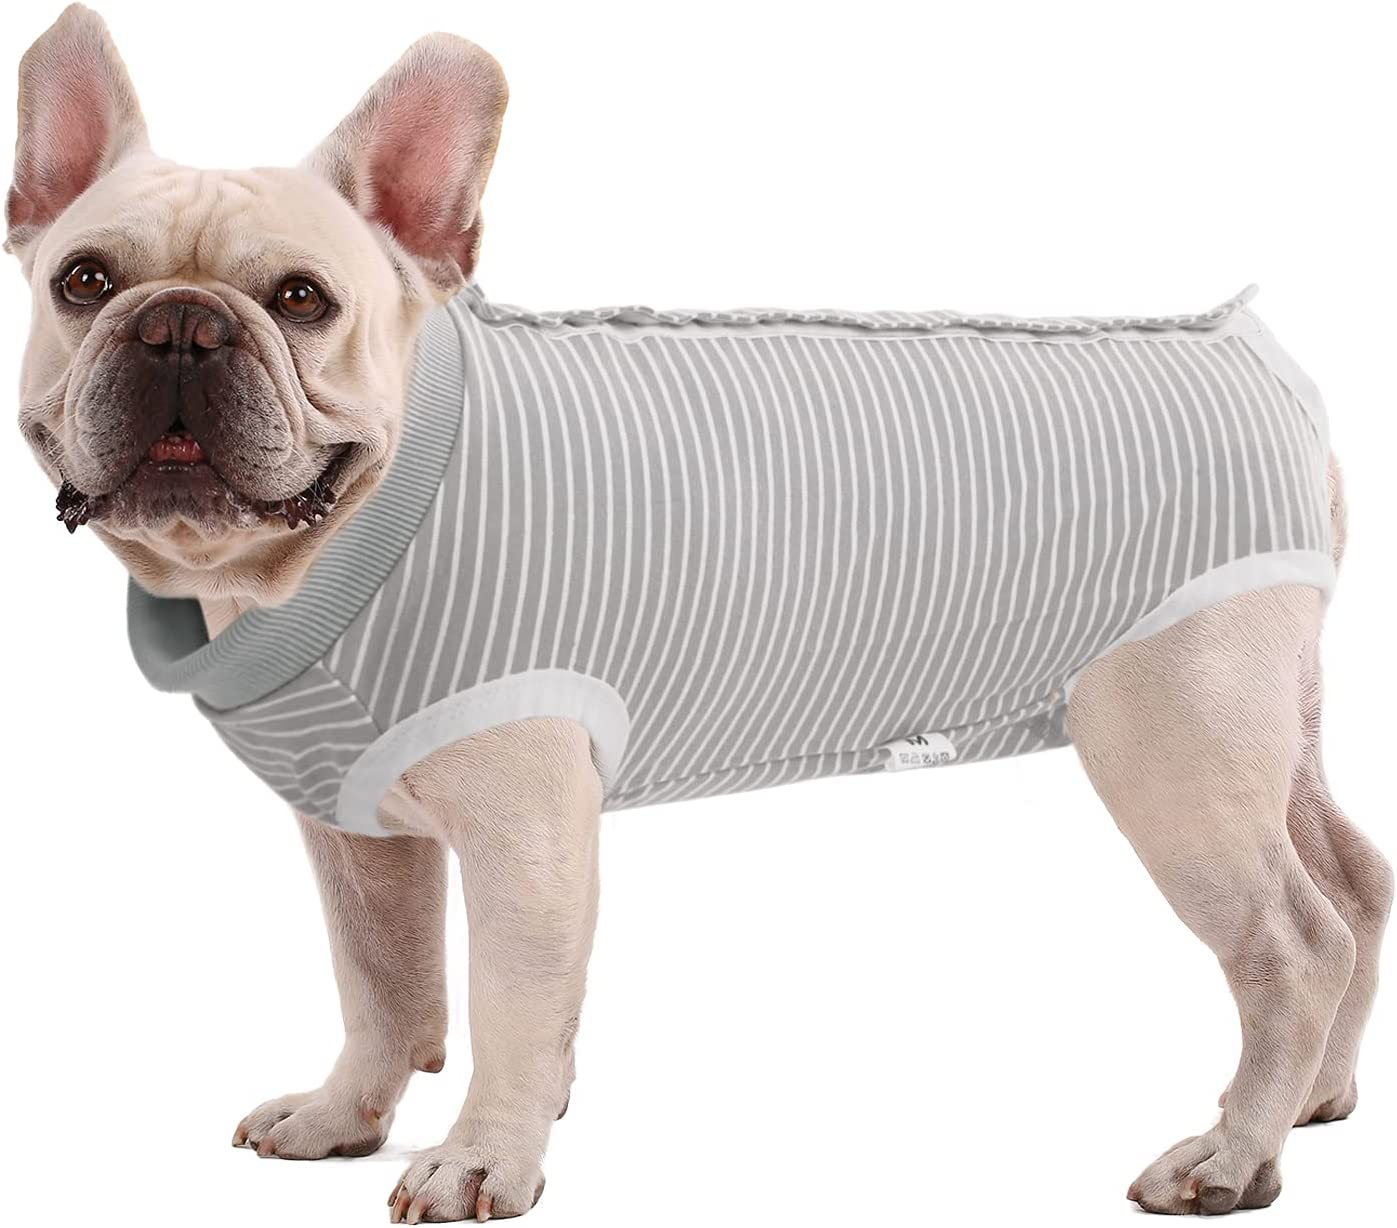 SAWMONG Recovery Suit for Dog, Dog Recovery Shirt for Abdominal Wounds, Pet Surgery Surgical Recovery Snugly Suit, Prevent Licking Dog Bodysuit, Substitute E-Collar & Cone